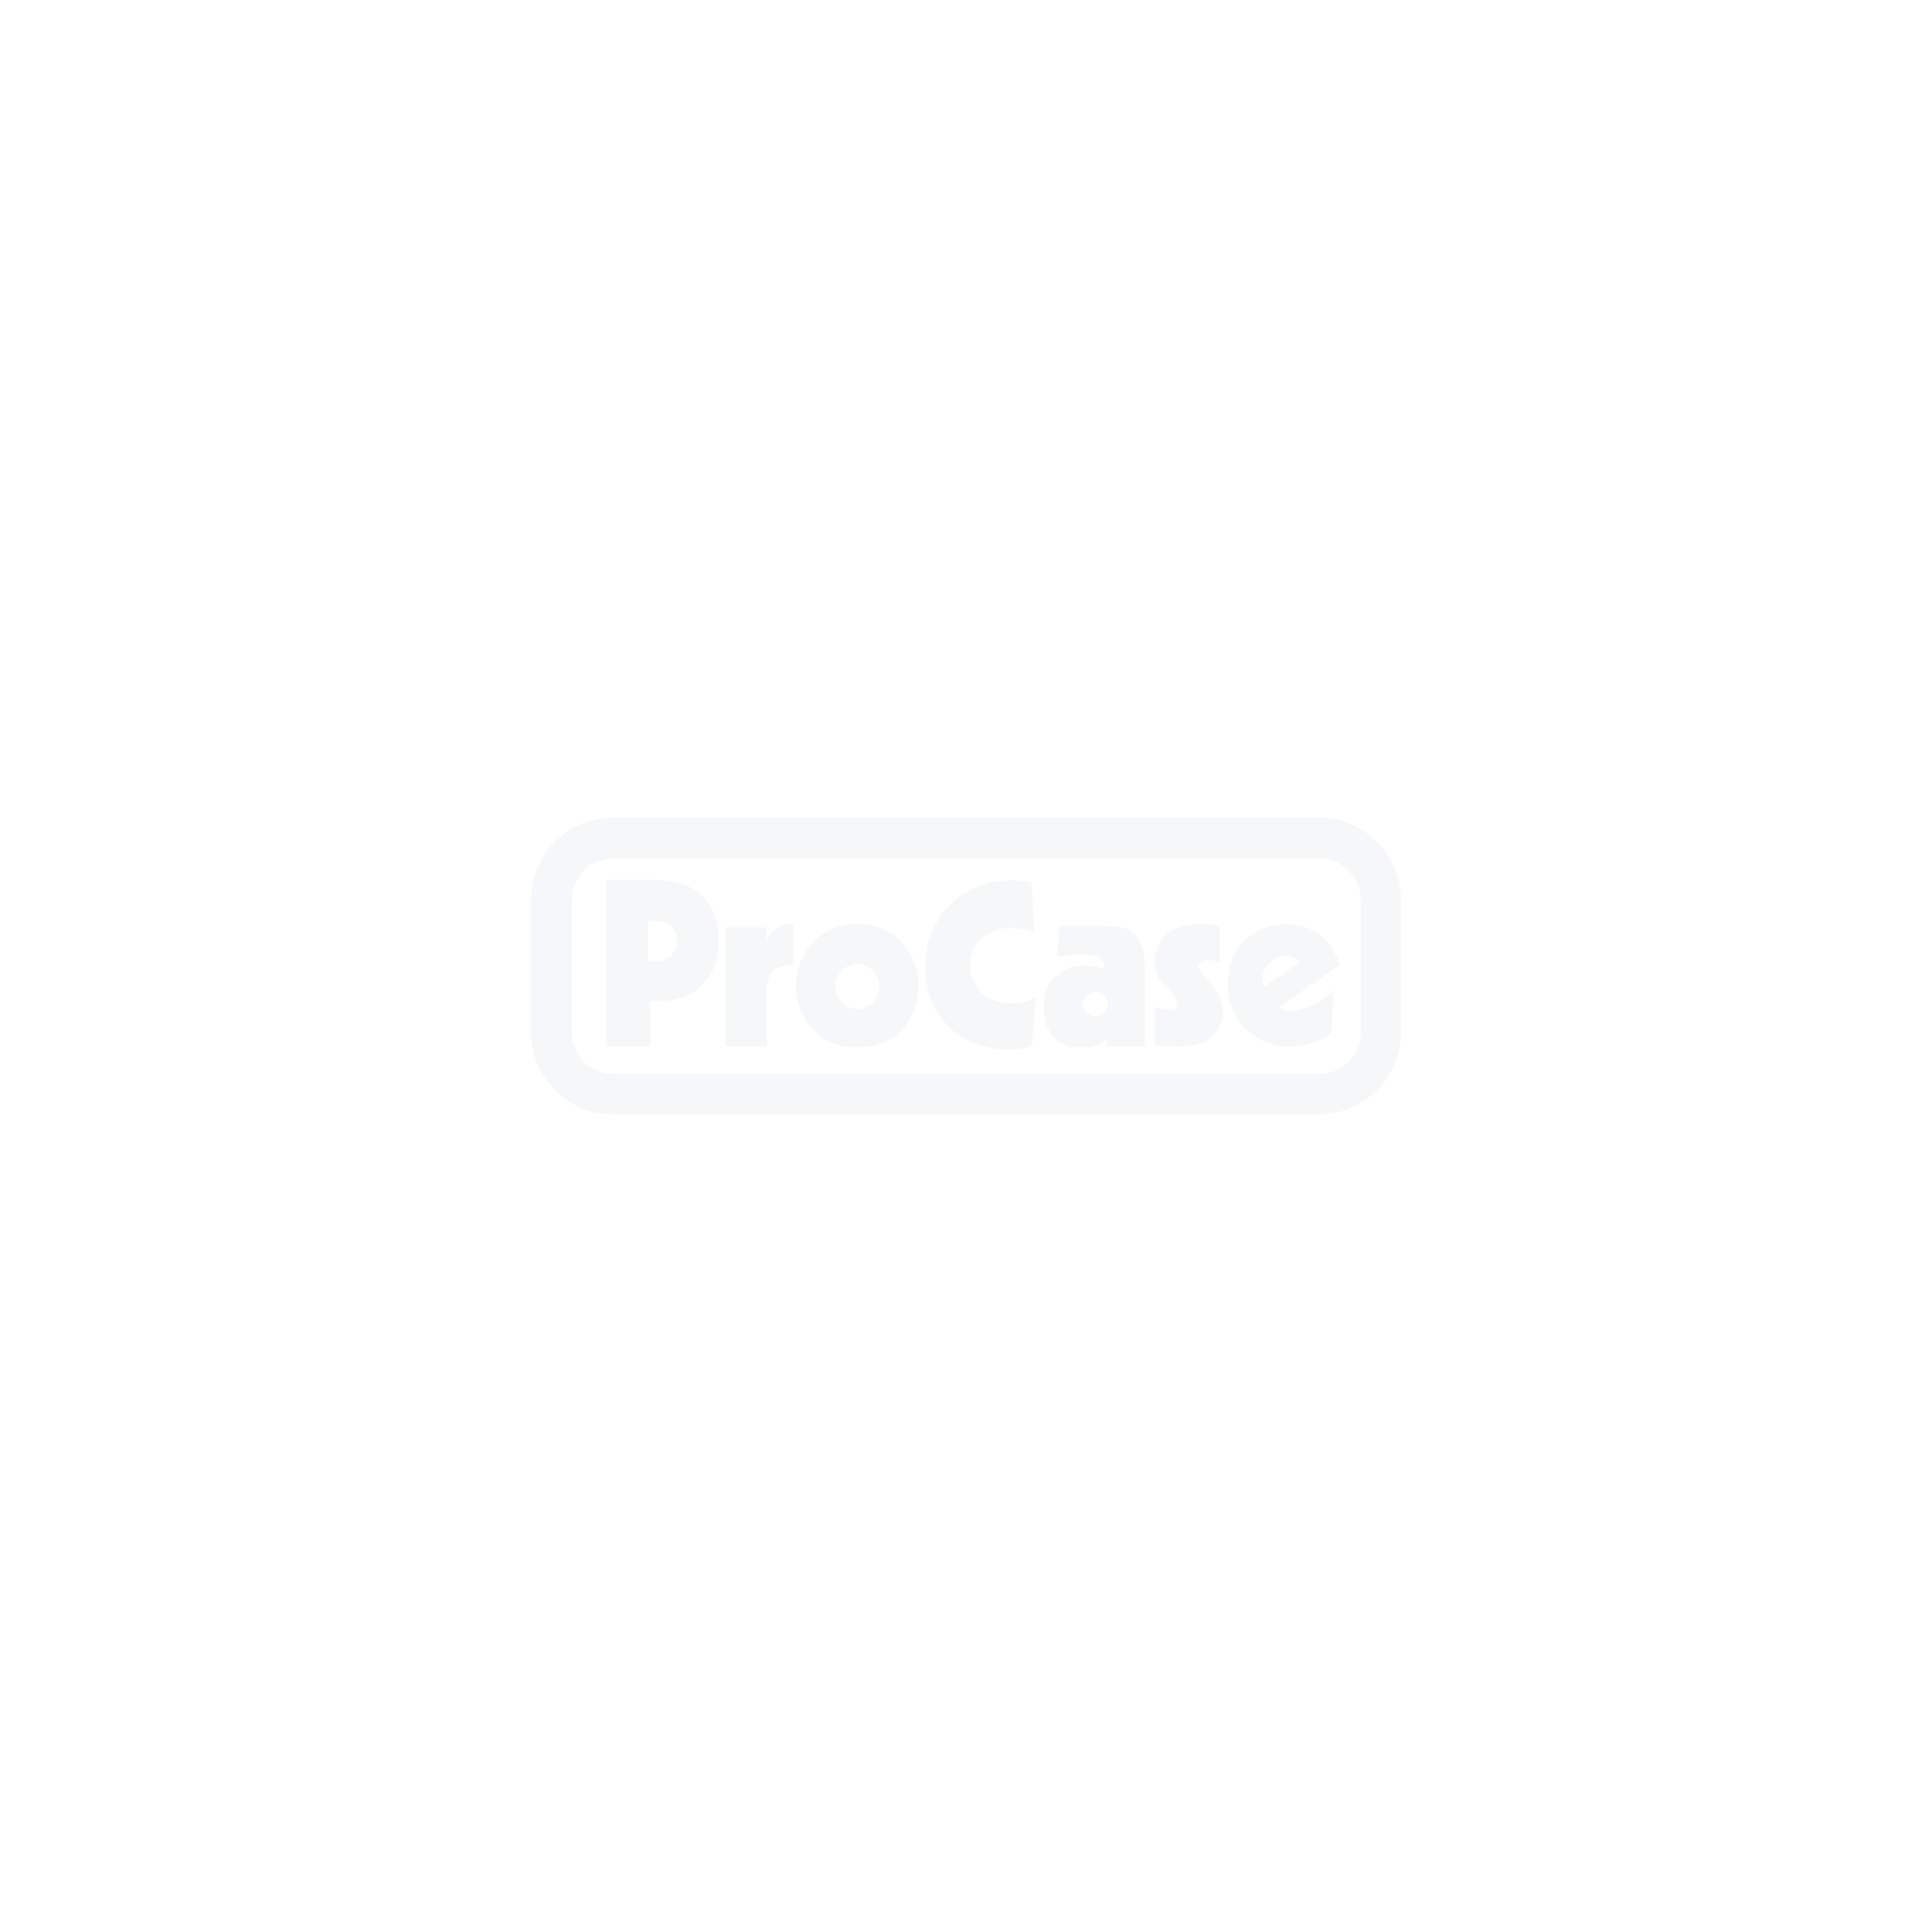 TFT Transportkoffer Doppel-FLEX Case mit Trolley XL